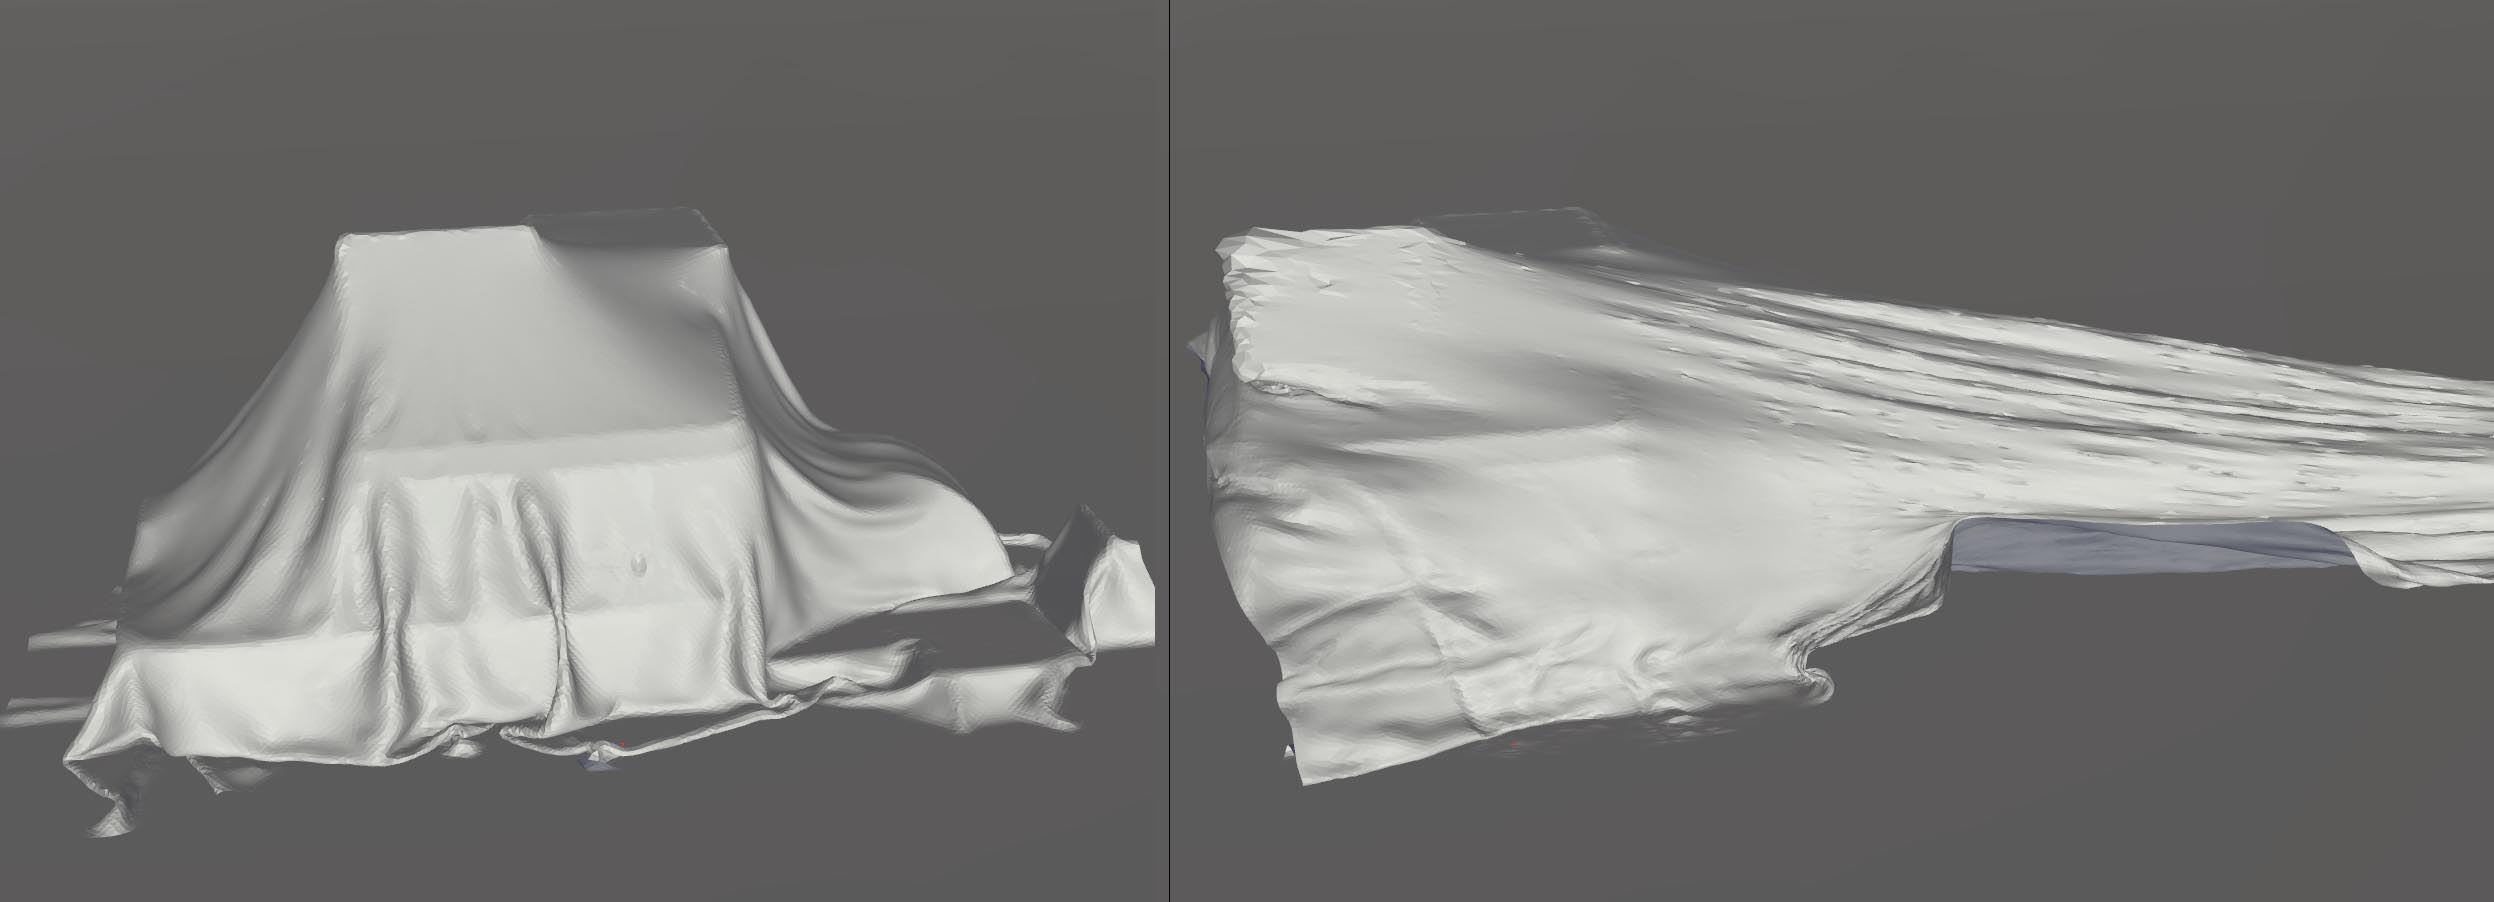 Vellum - to much stretching - General Houdini Questions - od|forum